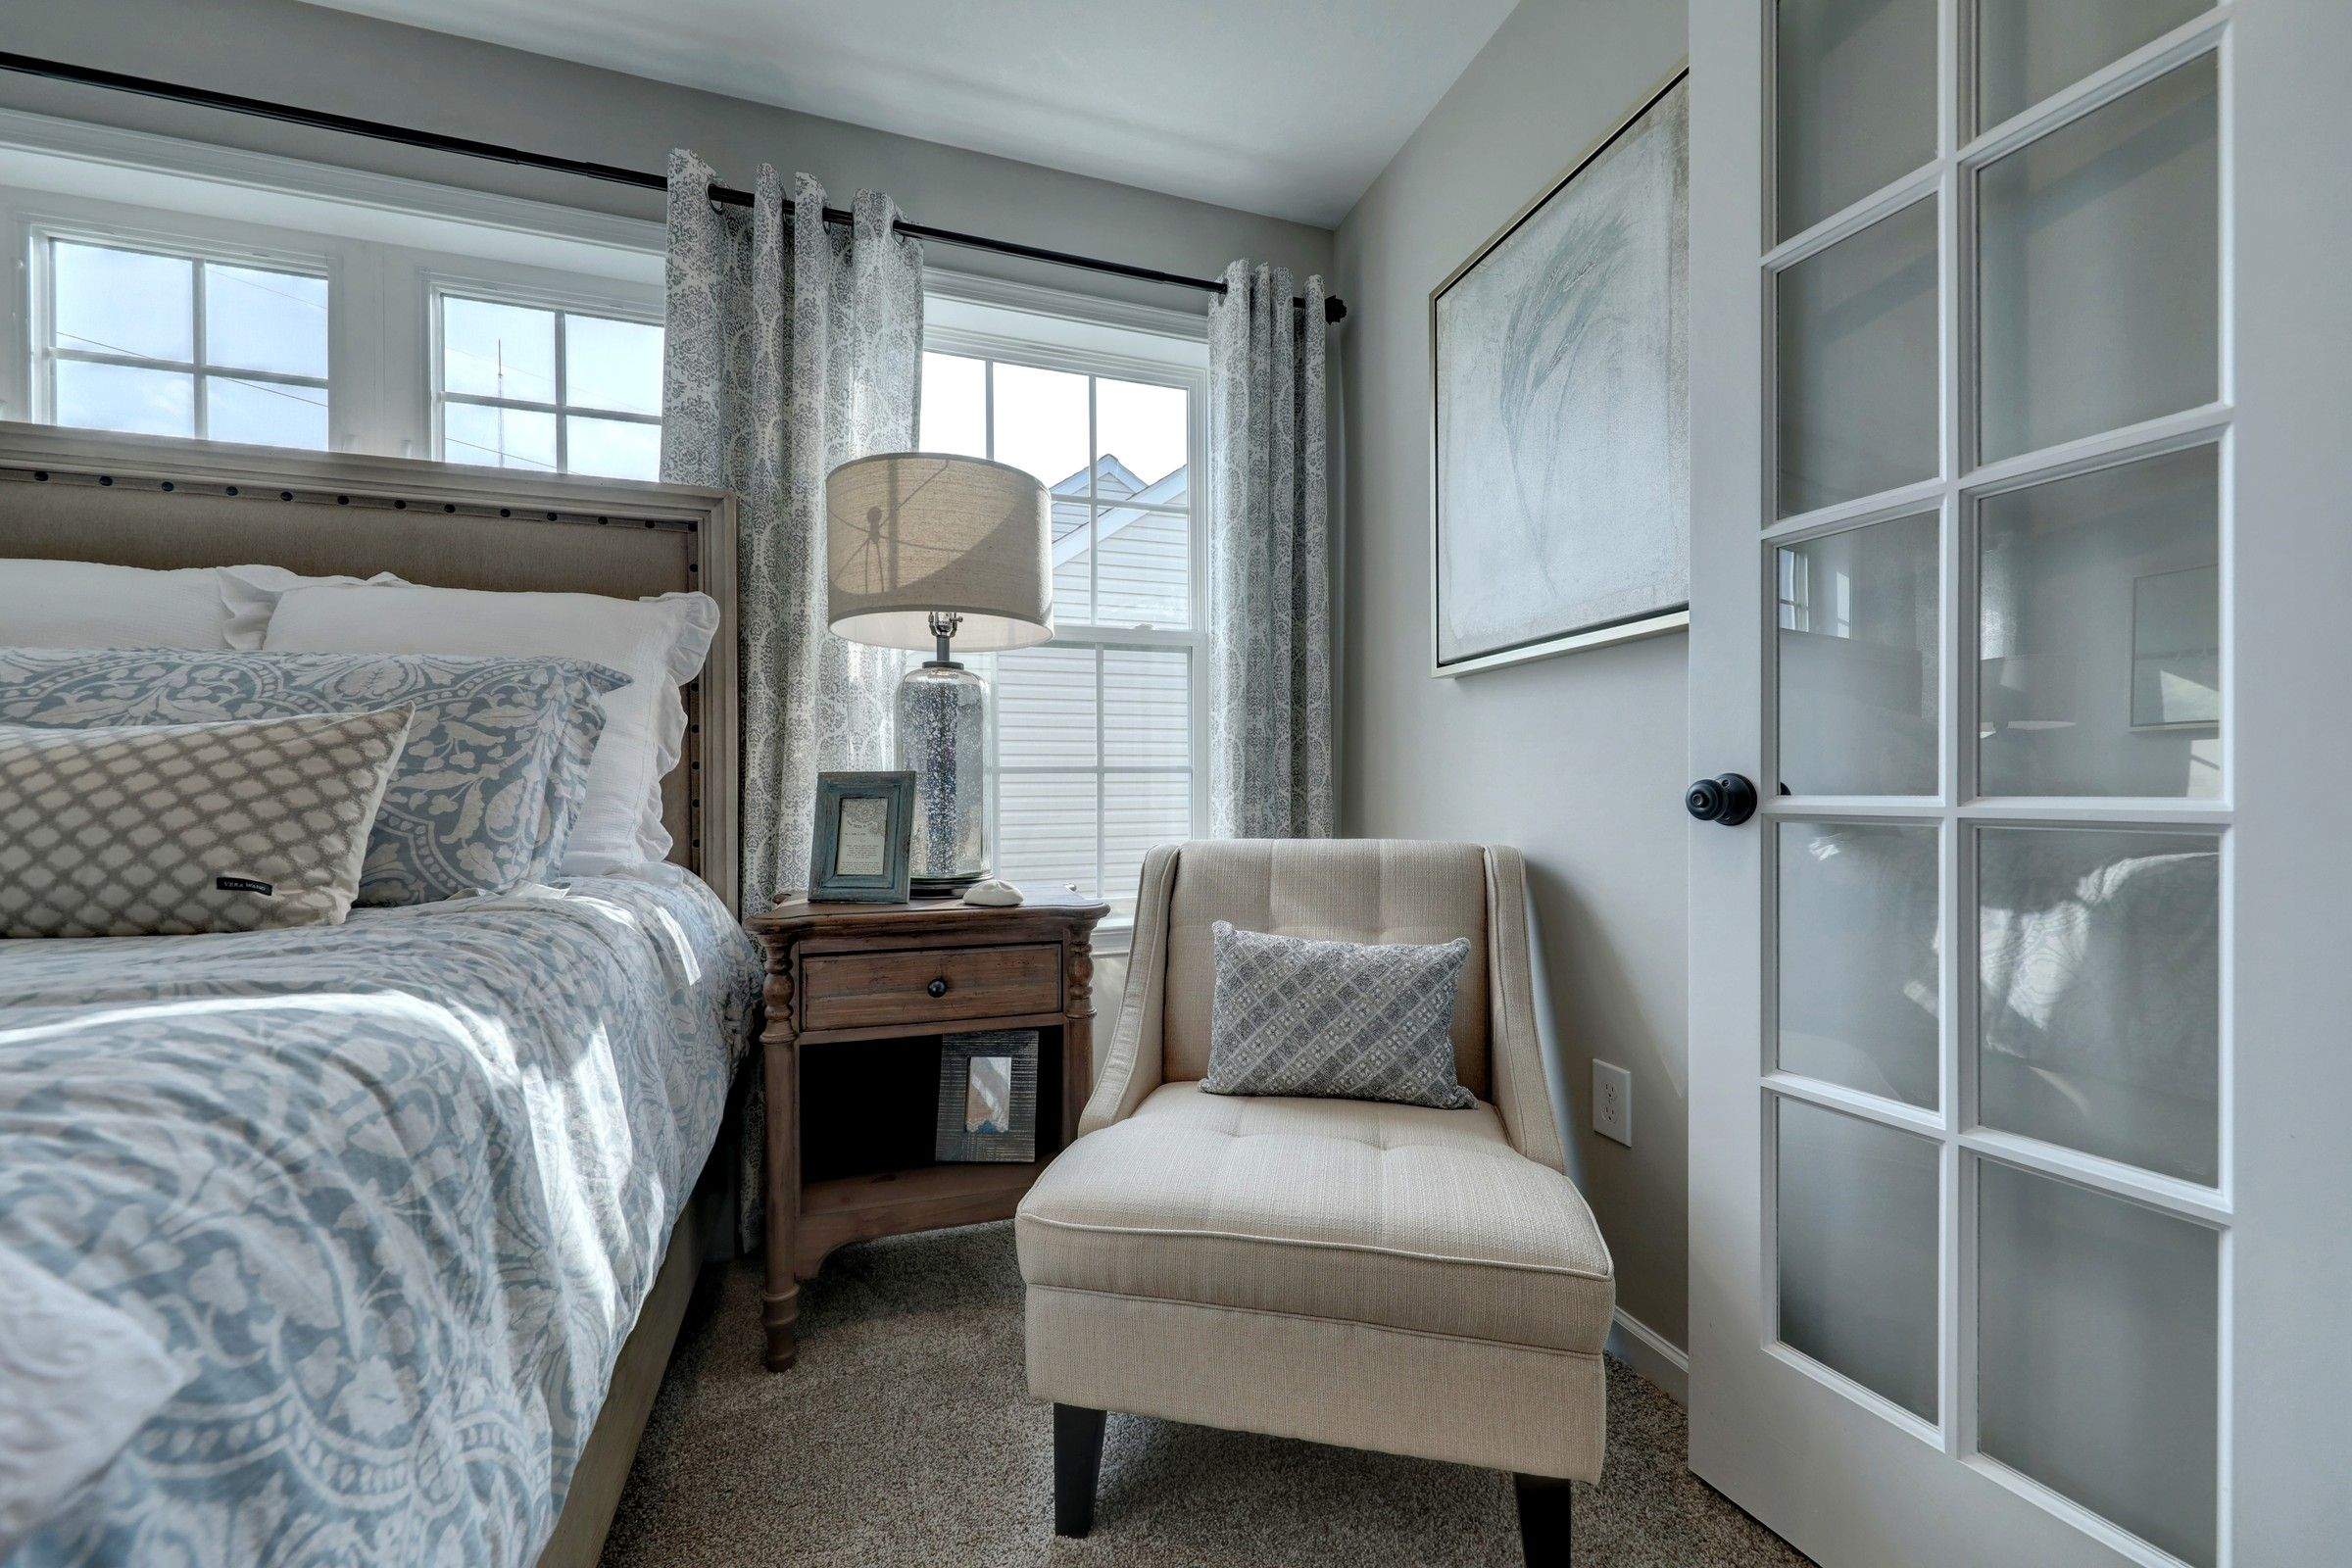 Bedroom featured in the Ethan Traditional By Keystone Custom Homes in Baltimore, MD